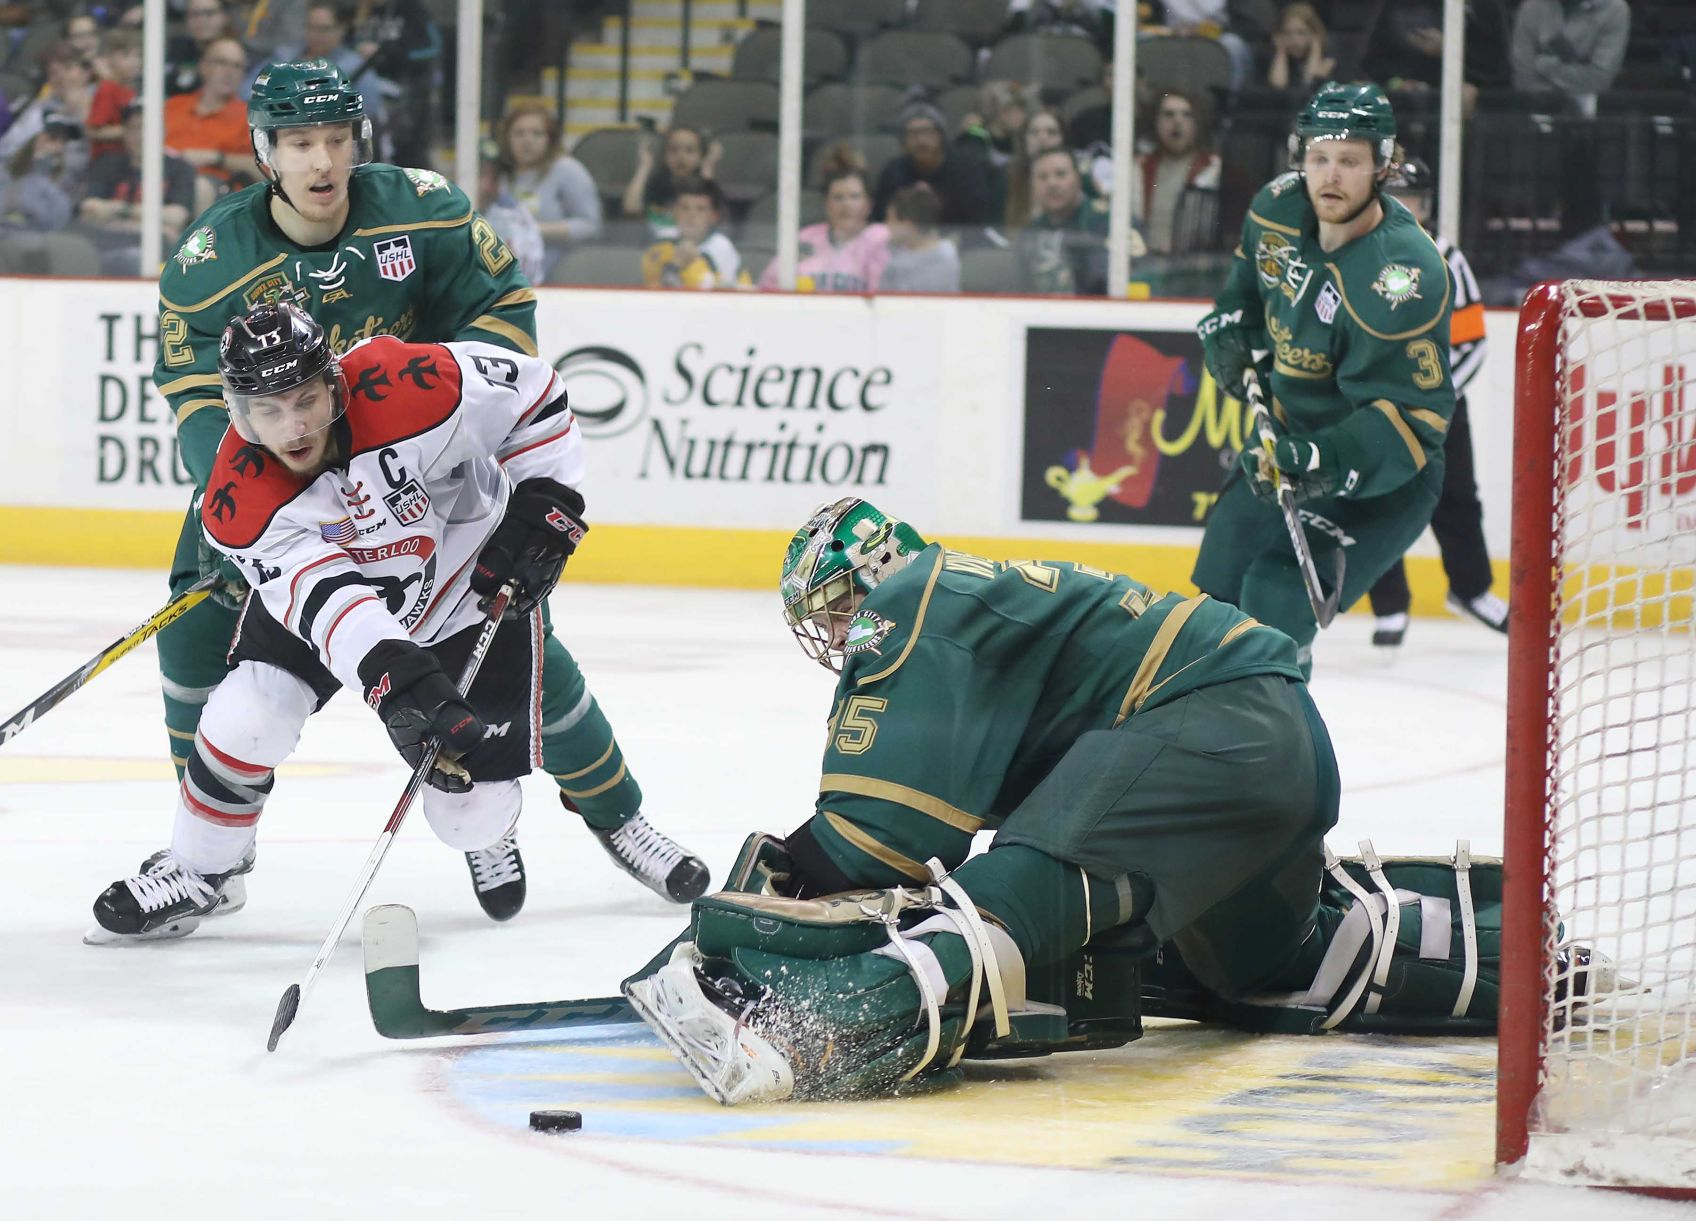 USHL: Black Hawks Fall In Western Conference Finals, 8-3